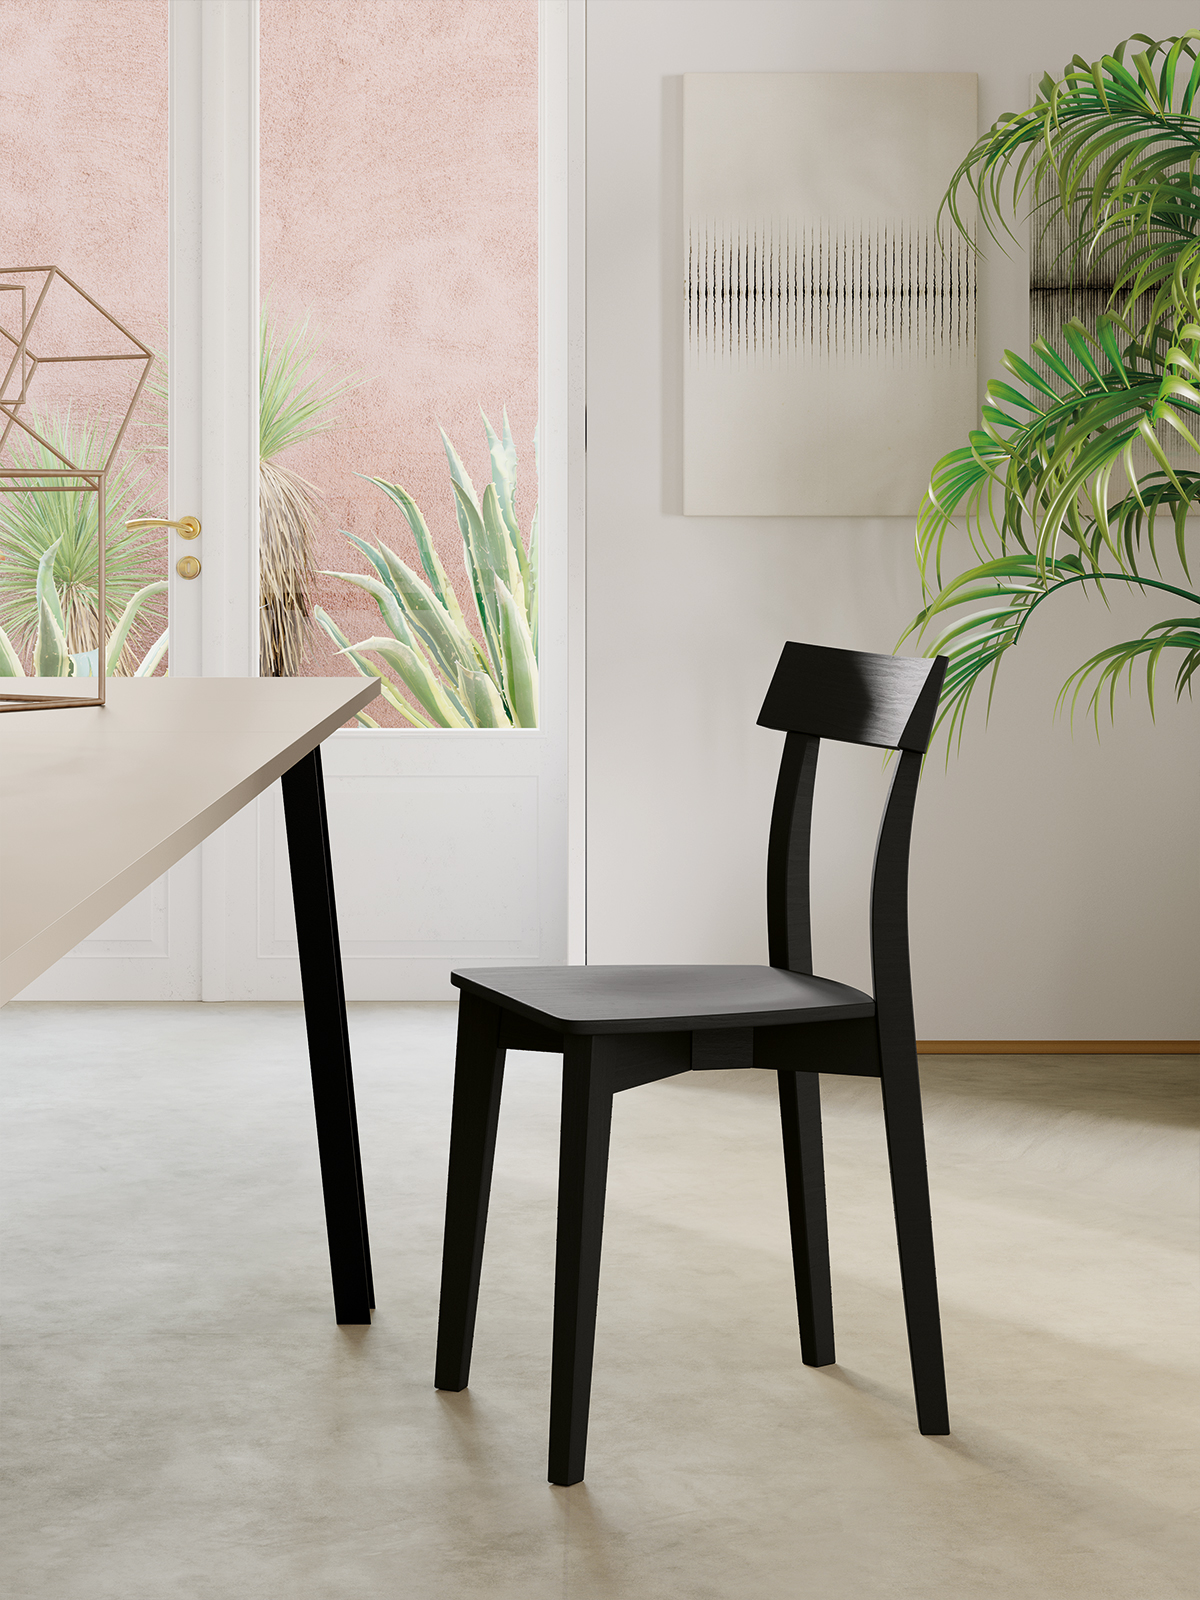 Personalisation, stylishness and functionality: Arredo3 presents its new catalogue of tables and chairs - 1